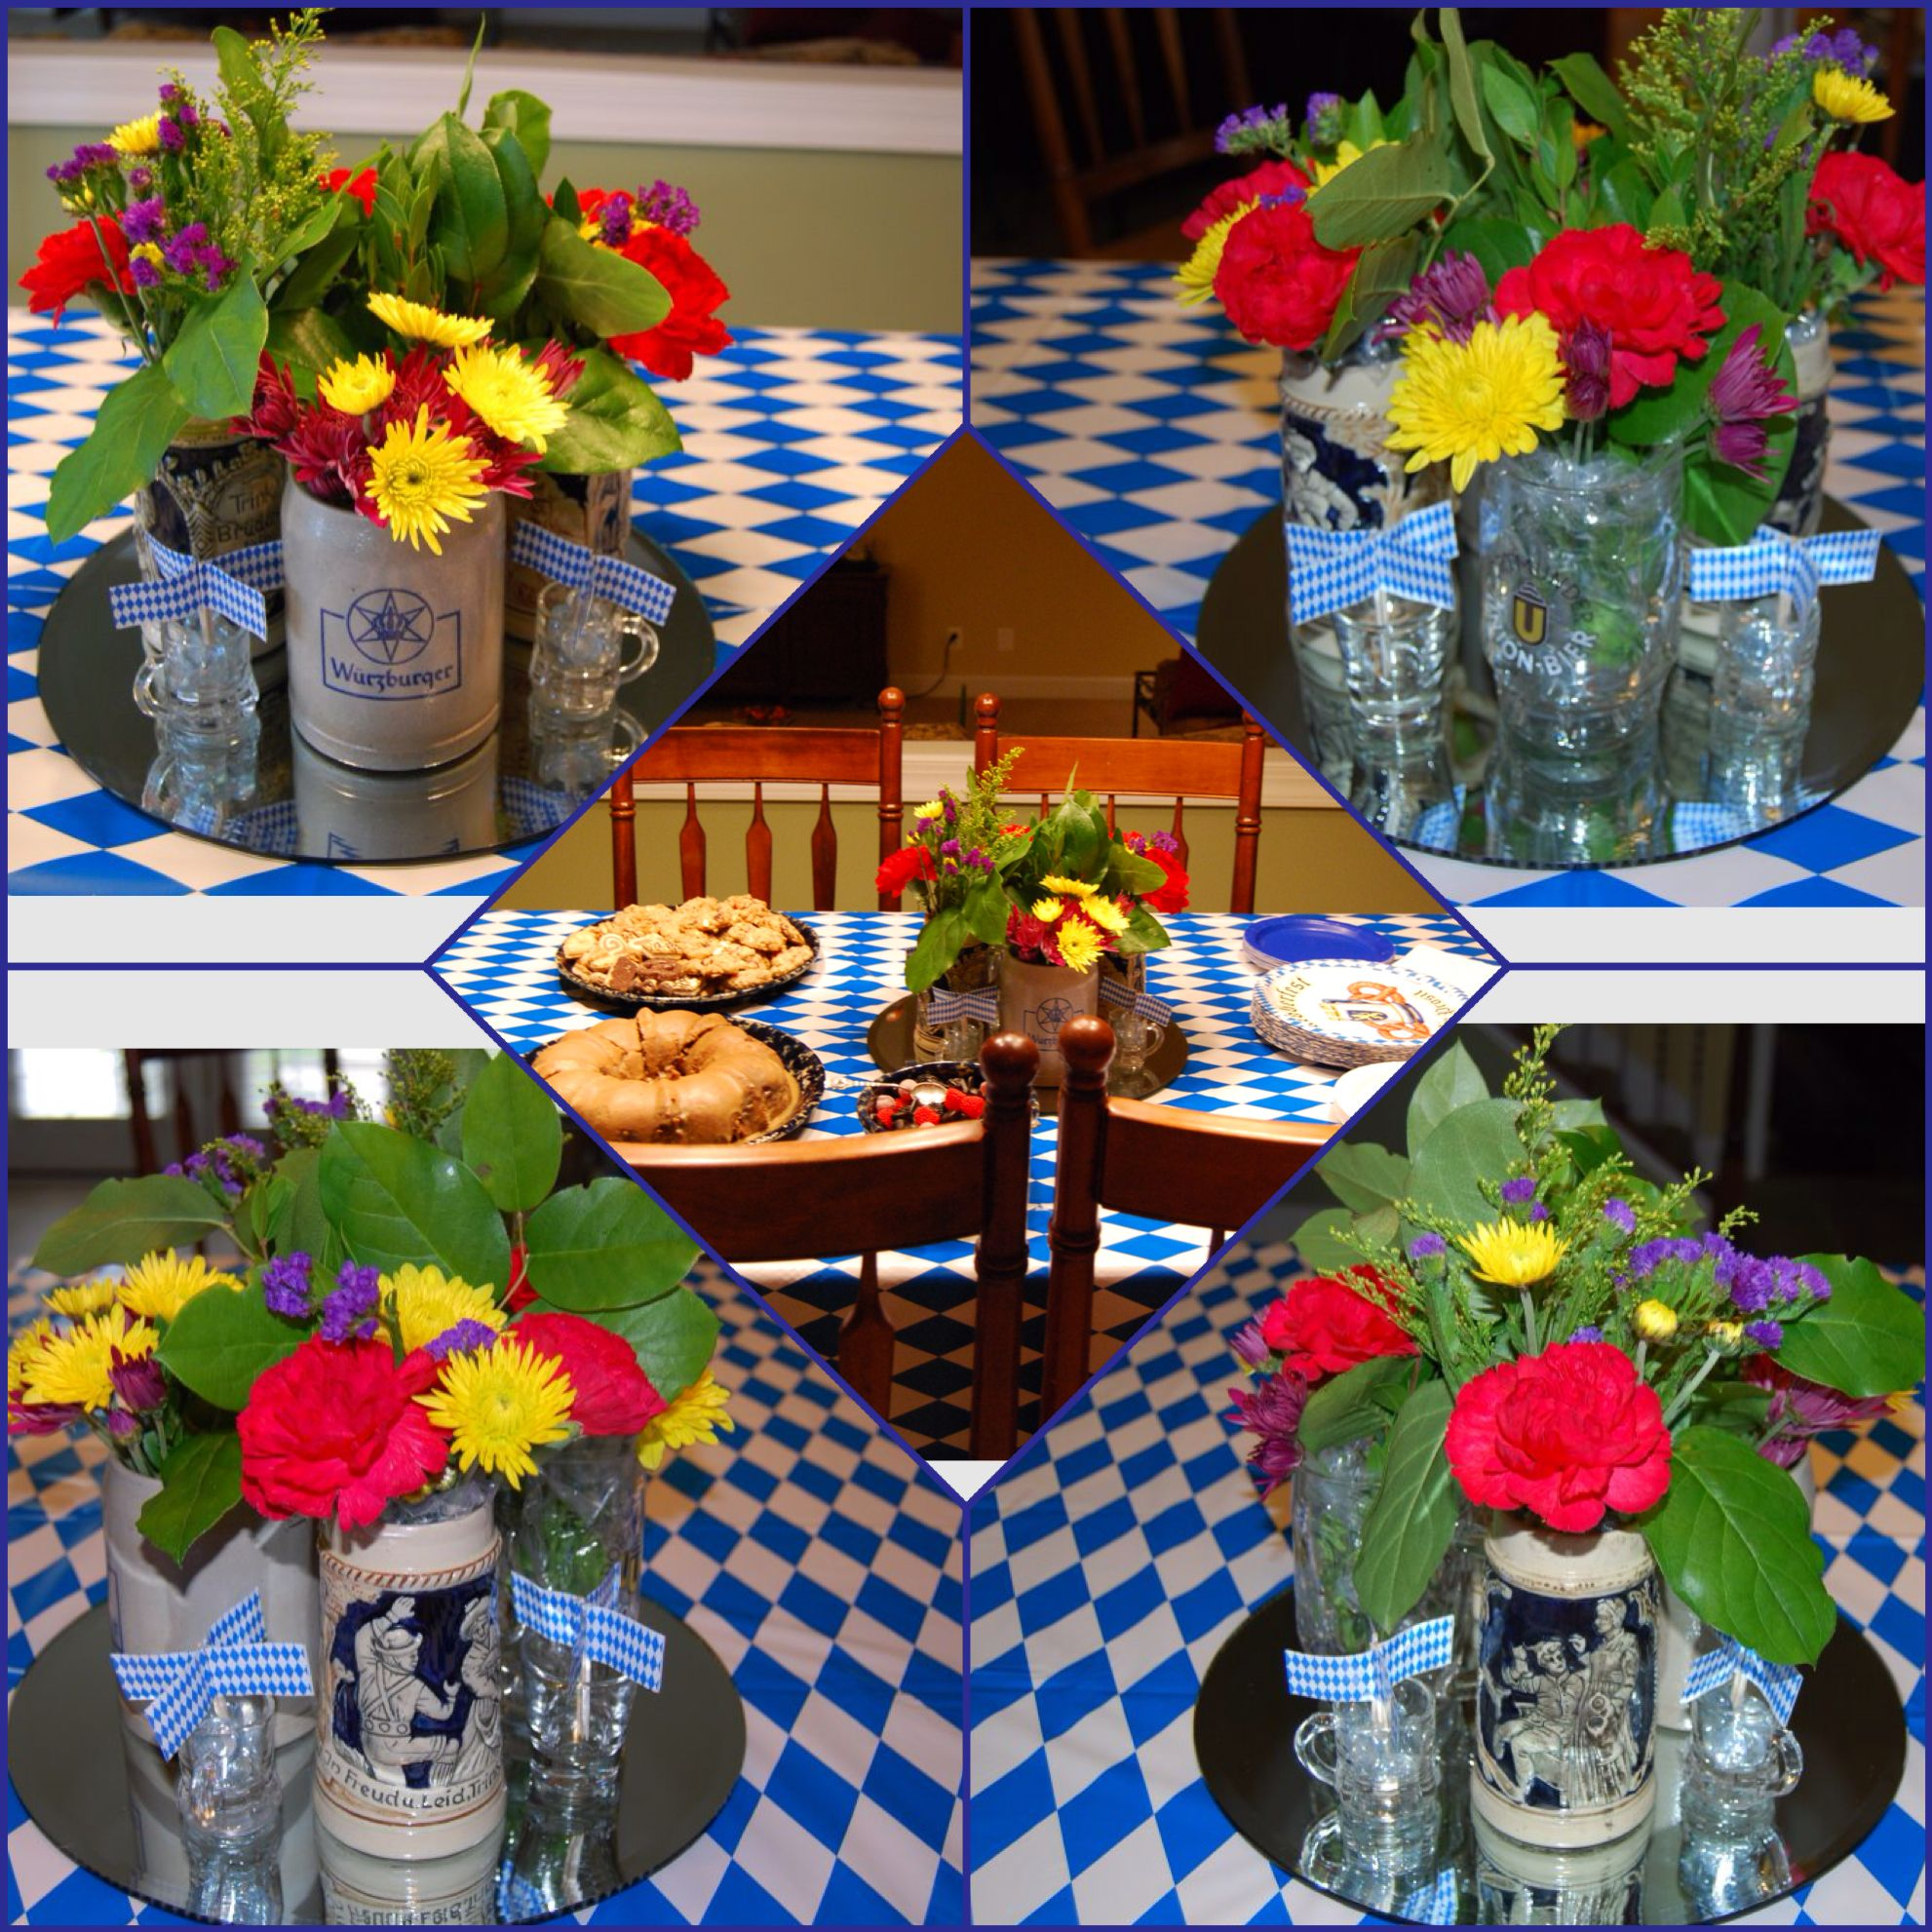 For an Oktoberfest party, I filled four vintage German beer steins ...